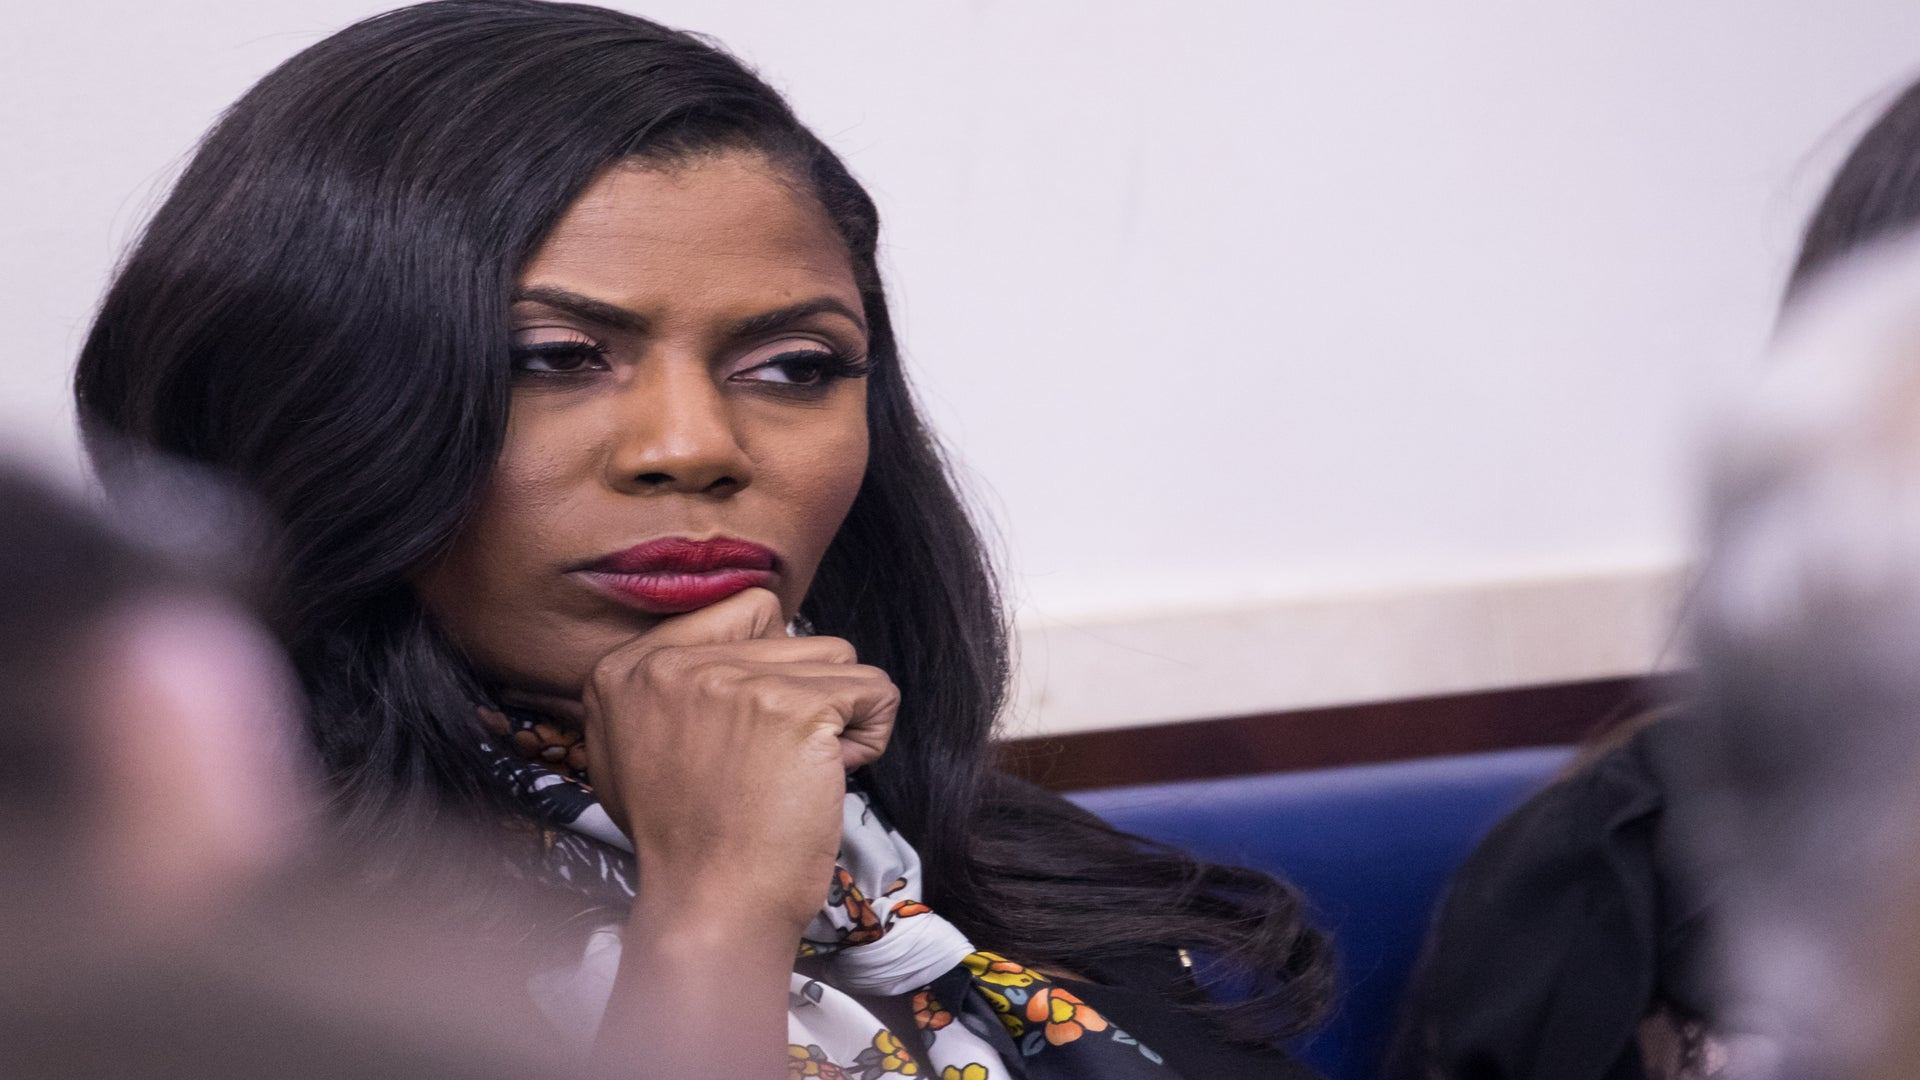 Omarosa Manigault Admits TrumpIs 'Racial,' Refuses To Call Him A 'Racist'